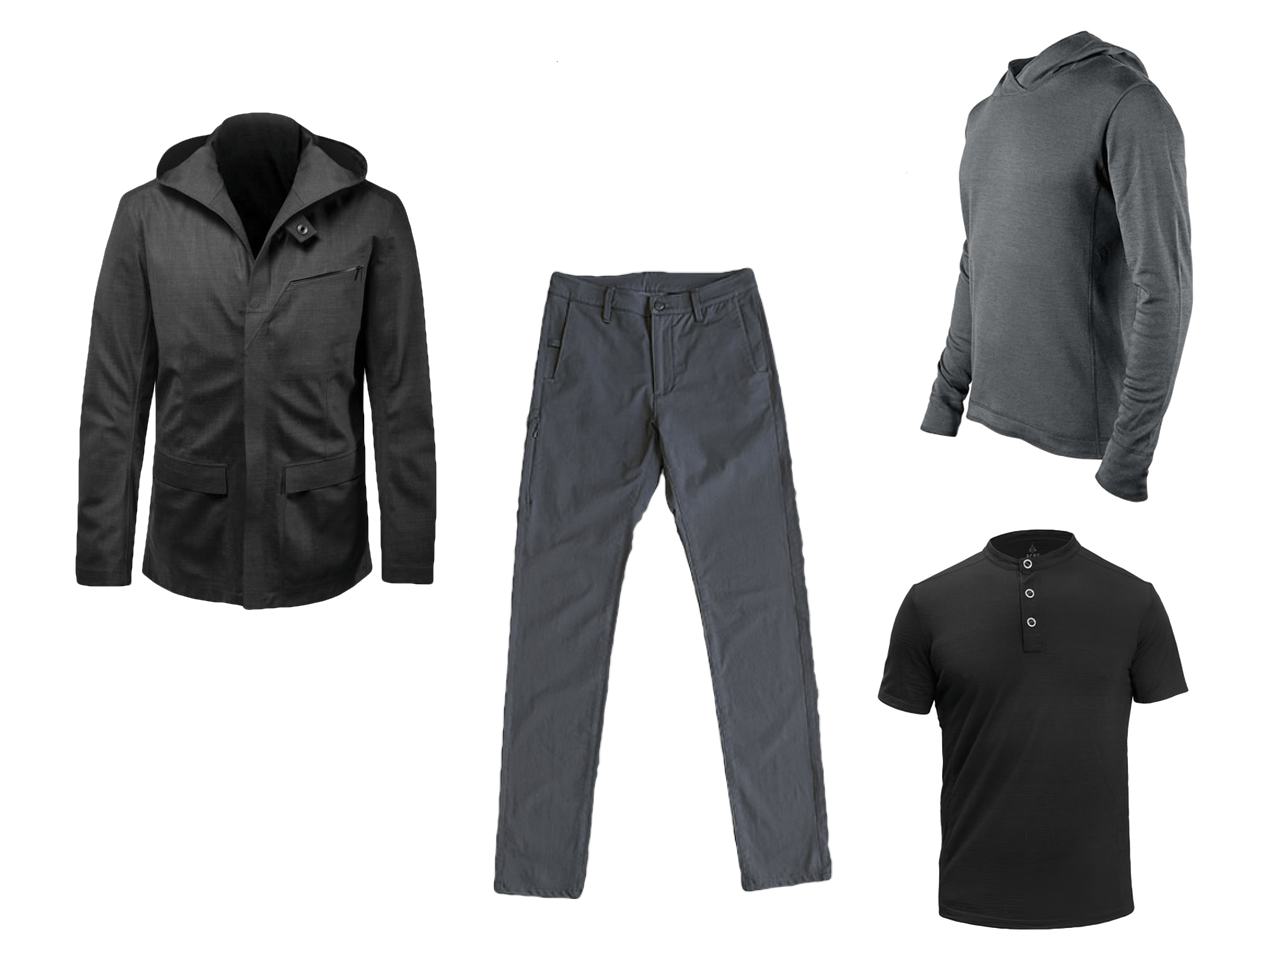 Techwear At Its Finest 10 Stylish Travel Outfits That